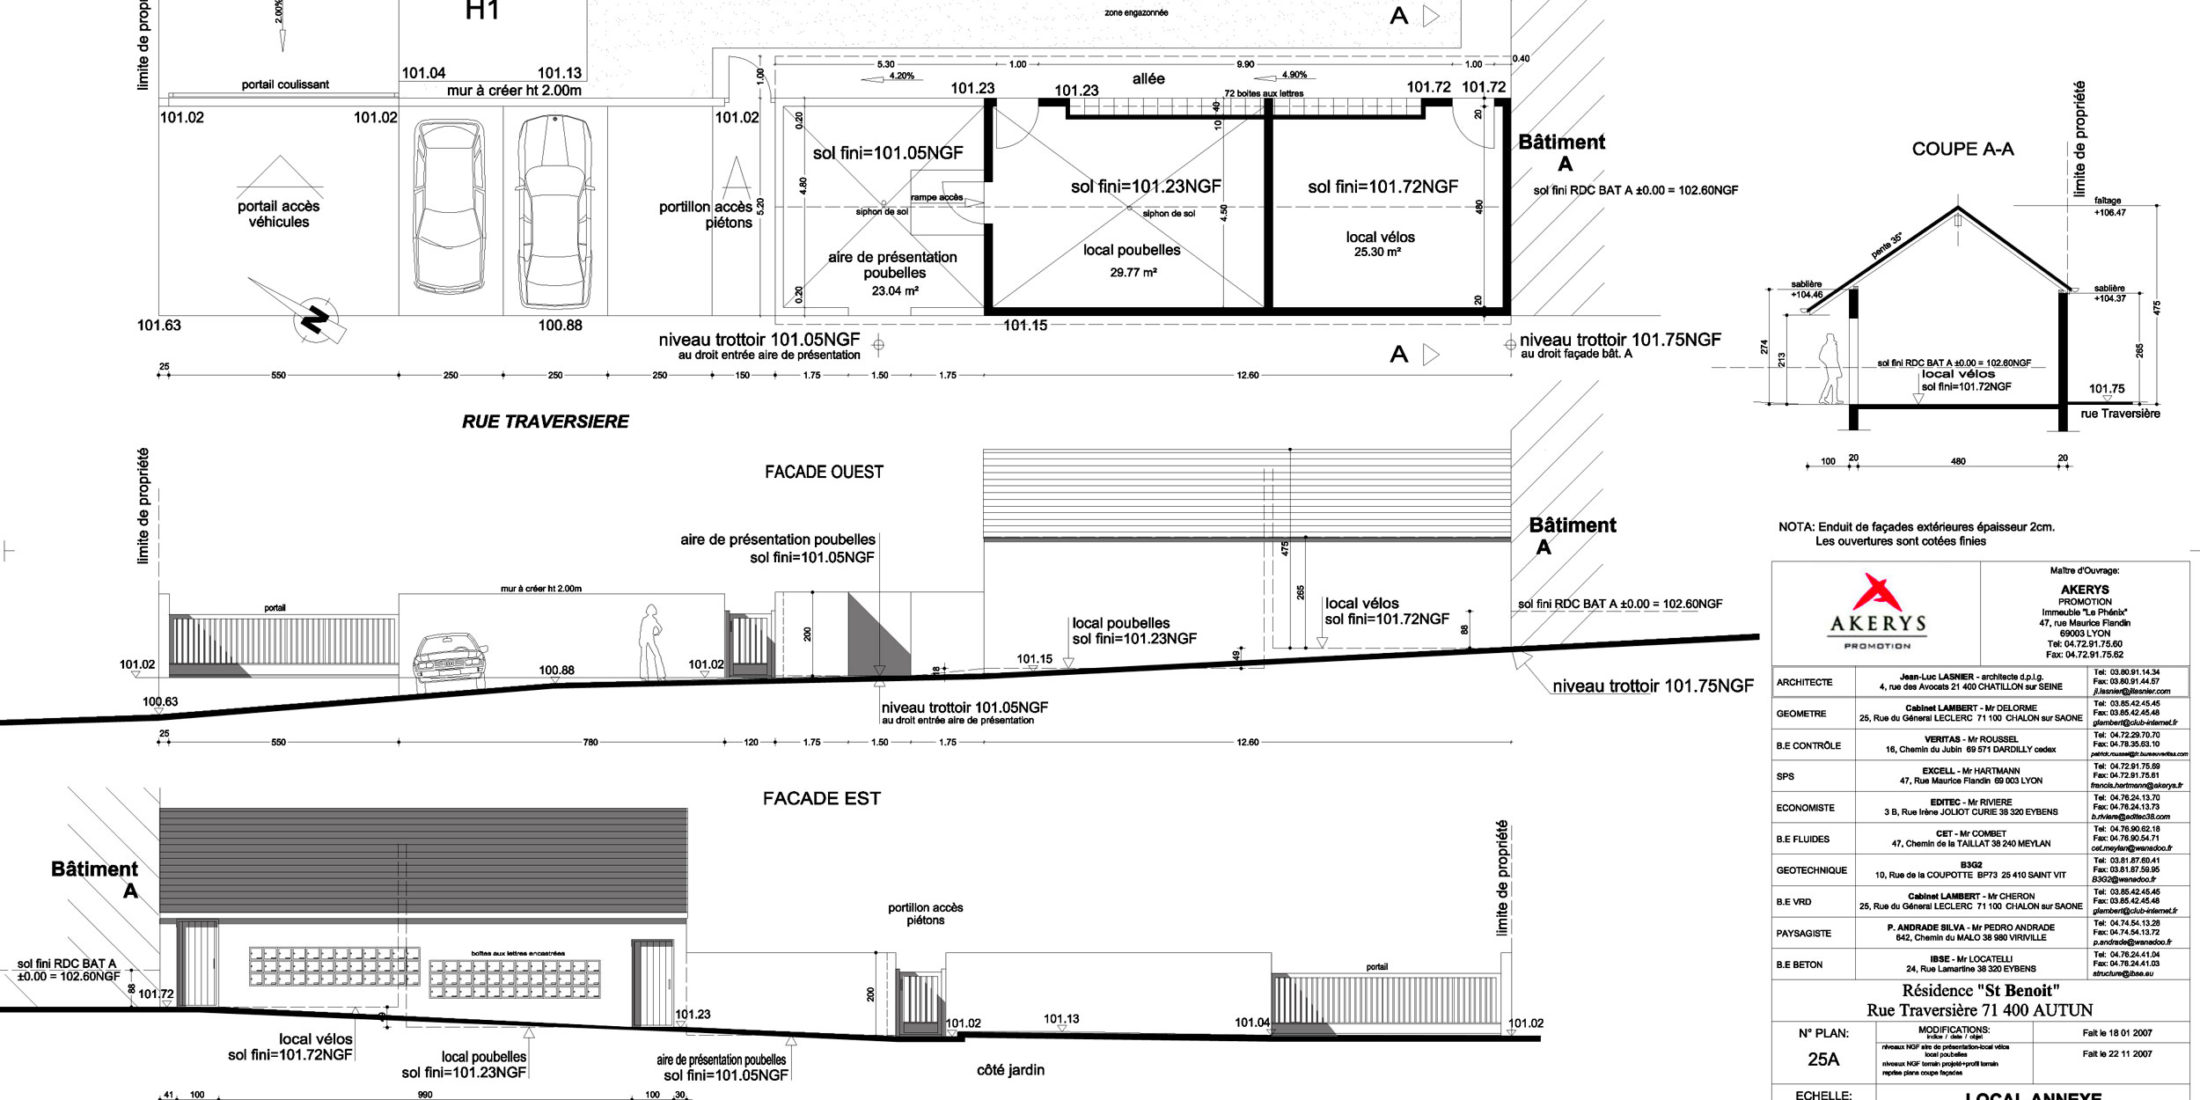 Plan-Marché_Local-Annexe_BAT-A